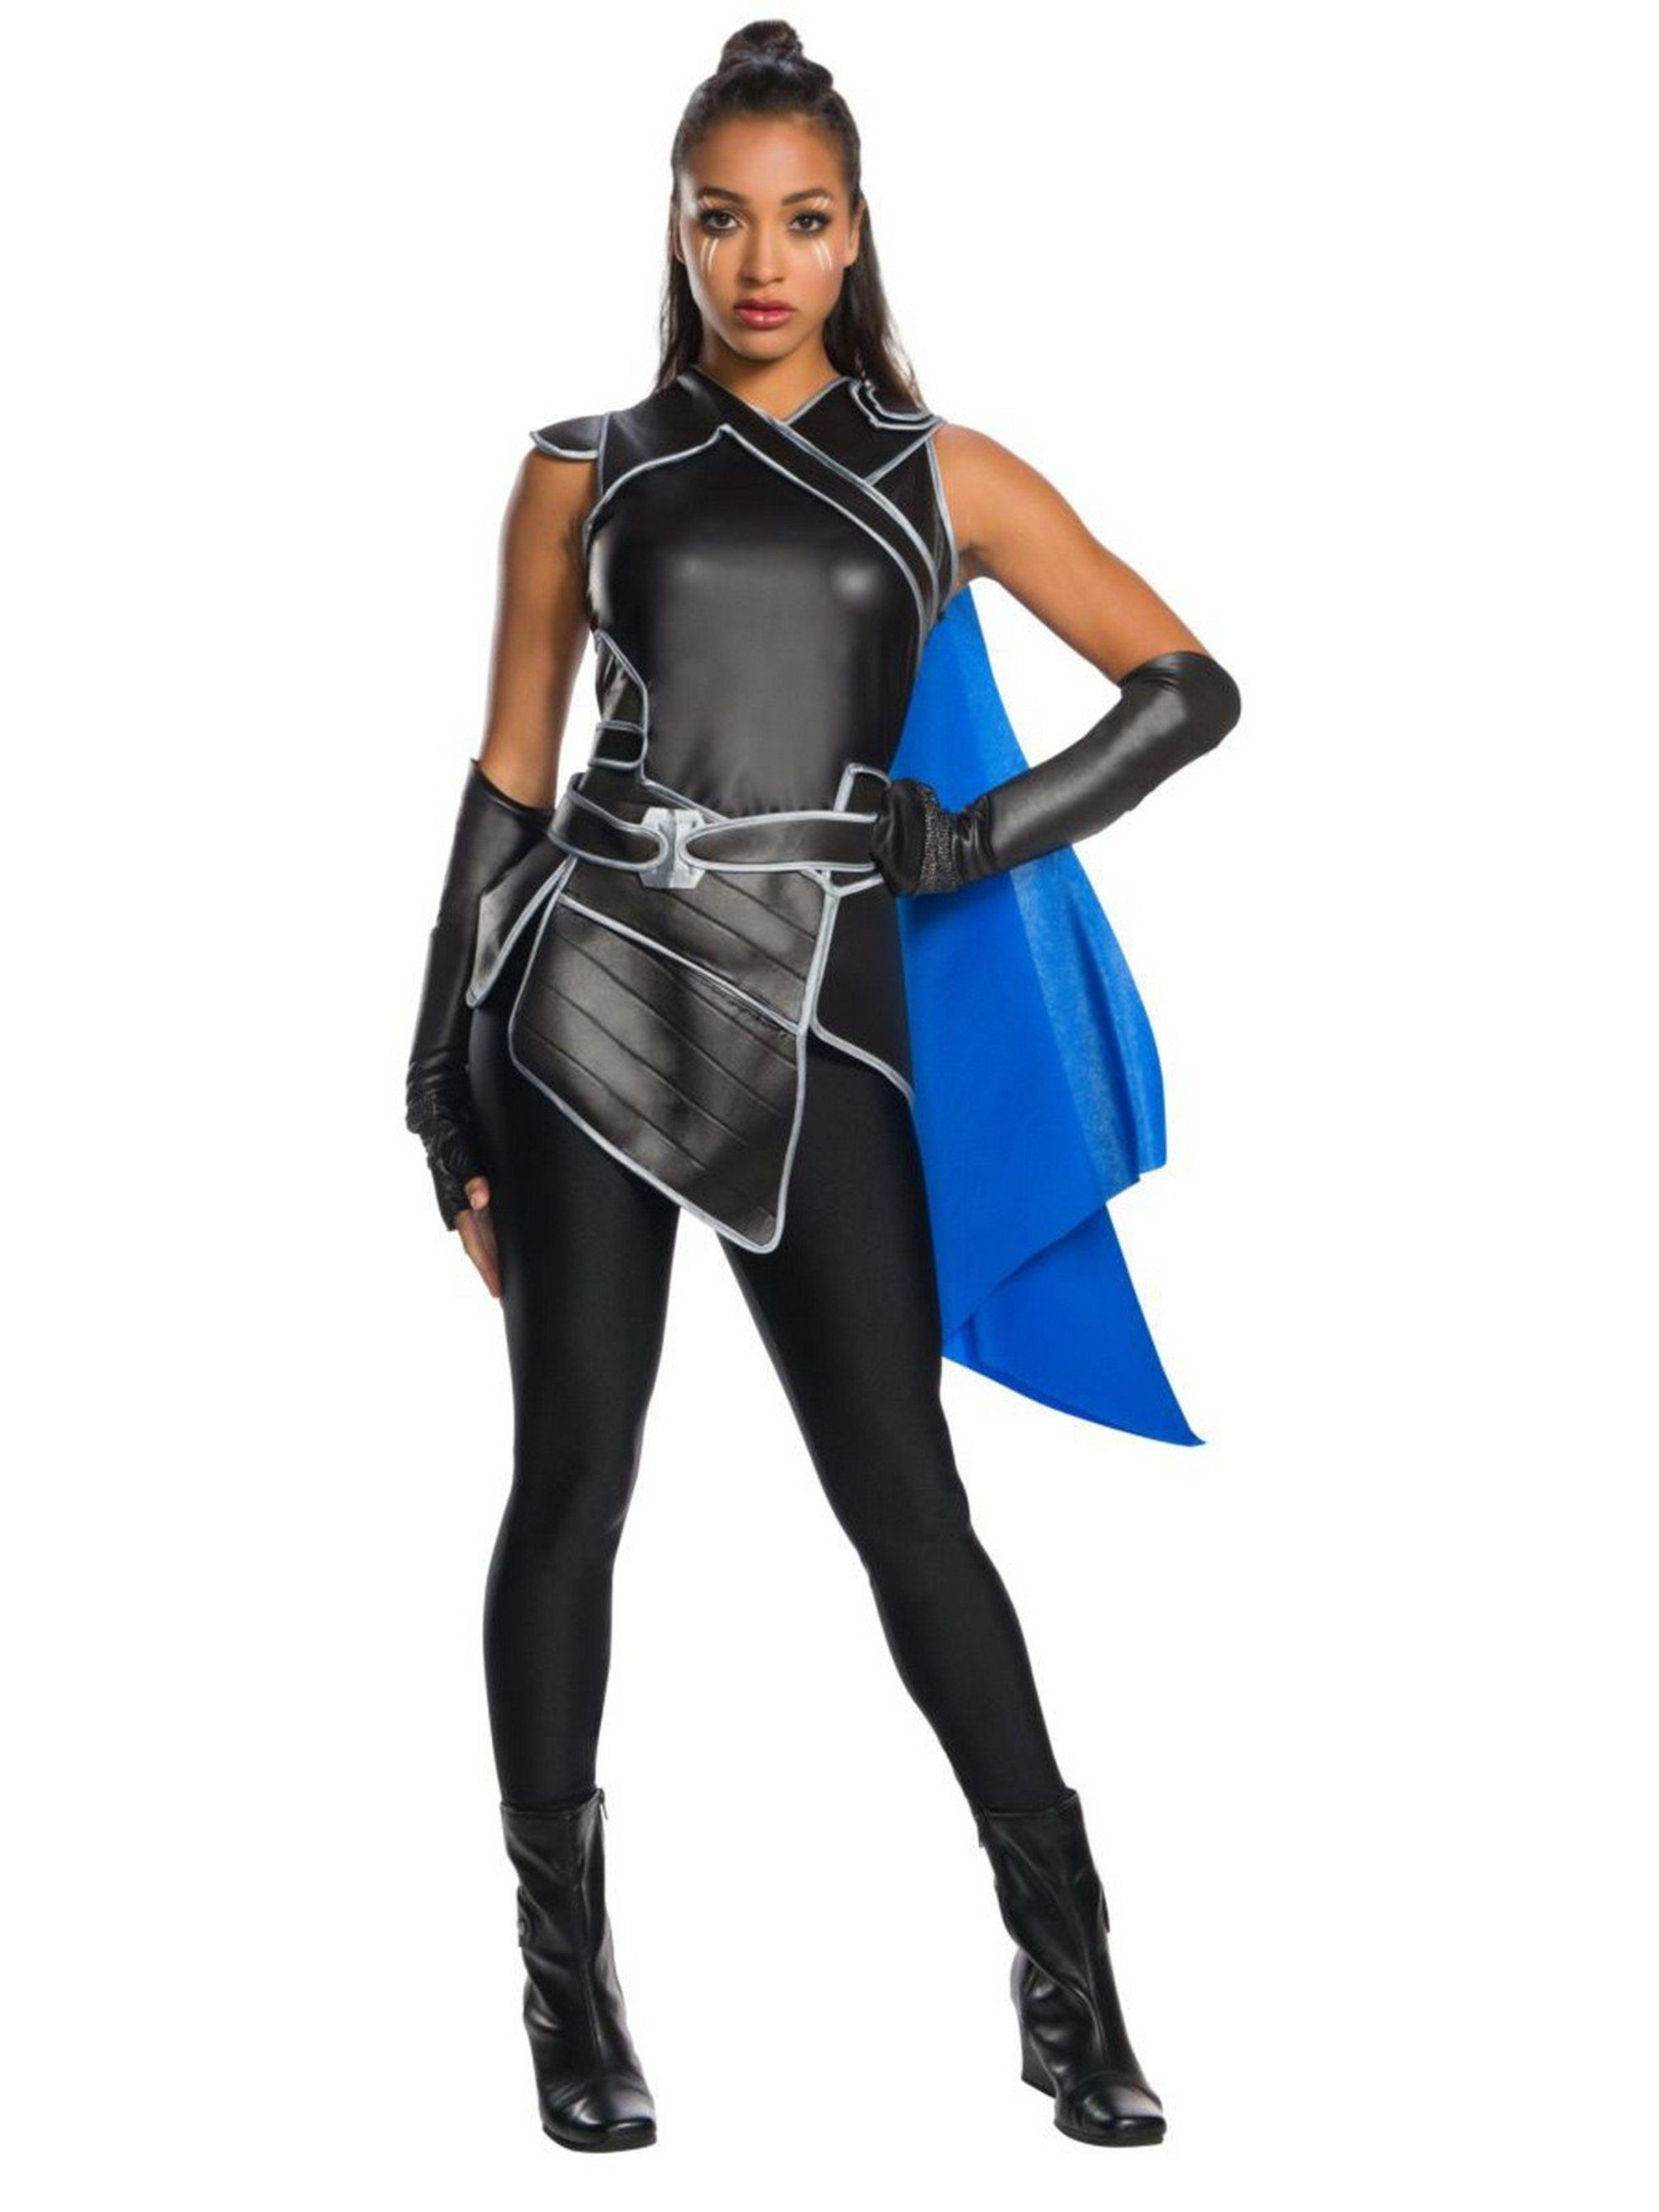 Thor: Ragnarok Valkyrie Costume For Adults   Wholesale Halloween ...